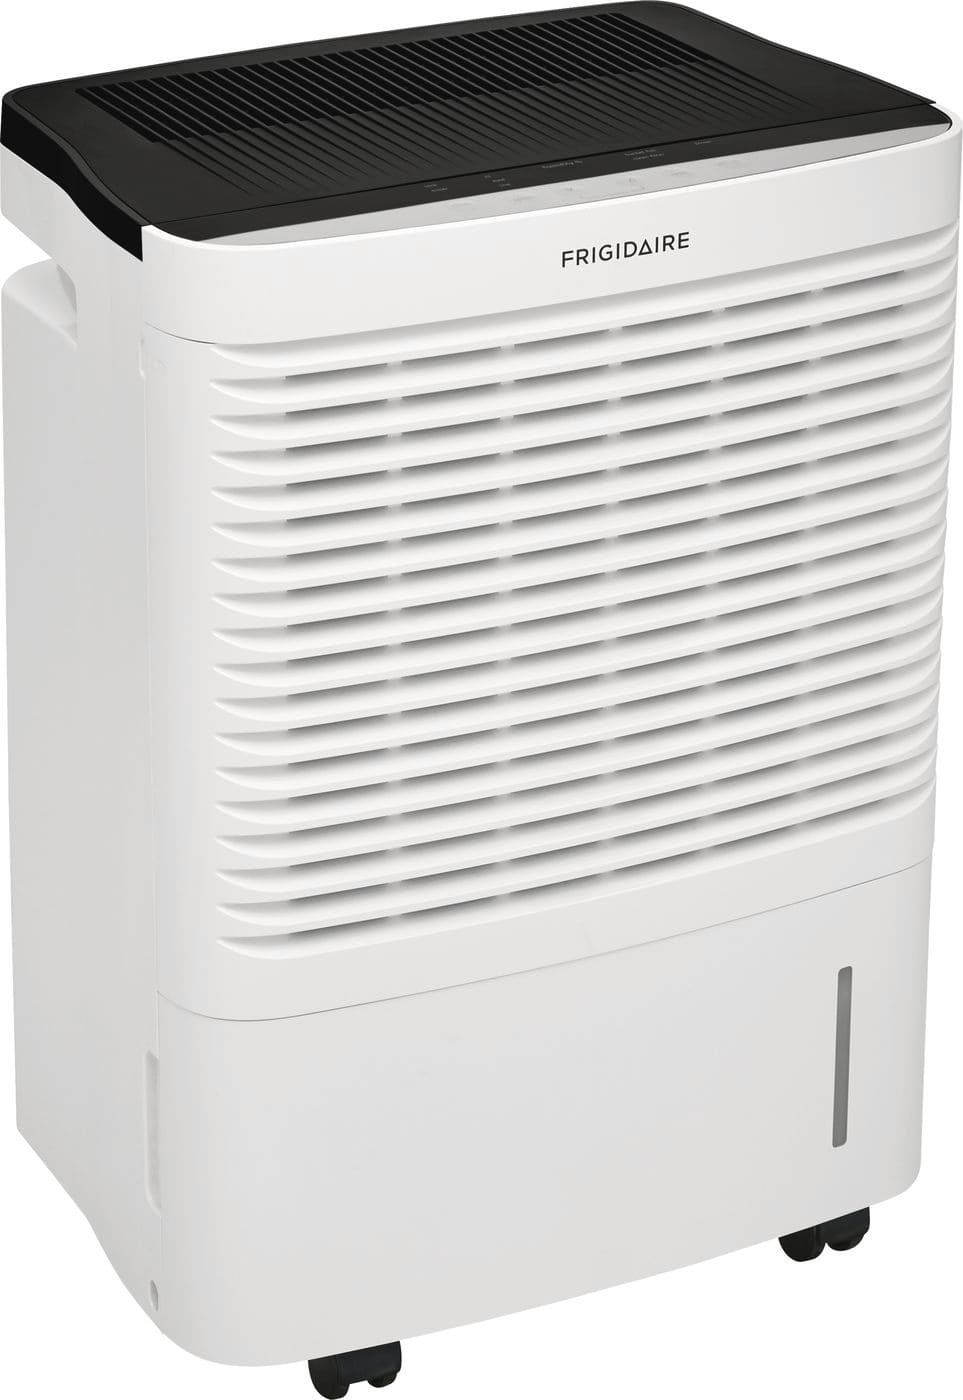 Model: FAD954DWD | Frigidaire Extra Large Room 95 Pint Capacity Dehumidifier